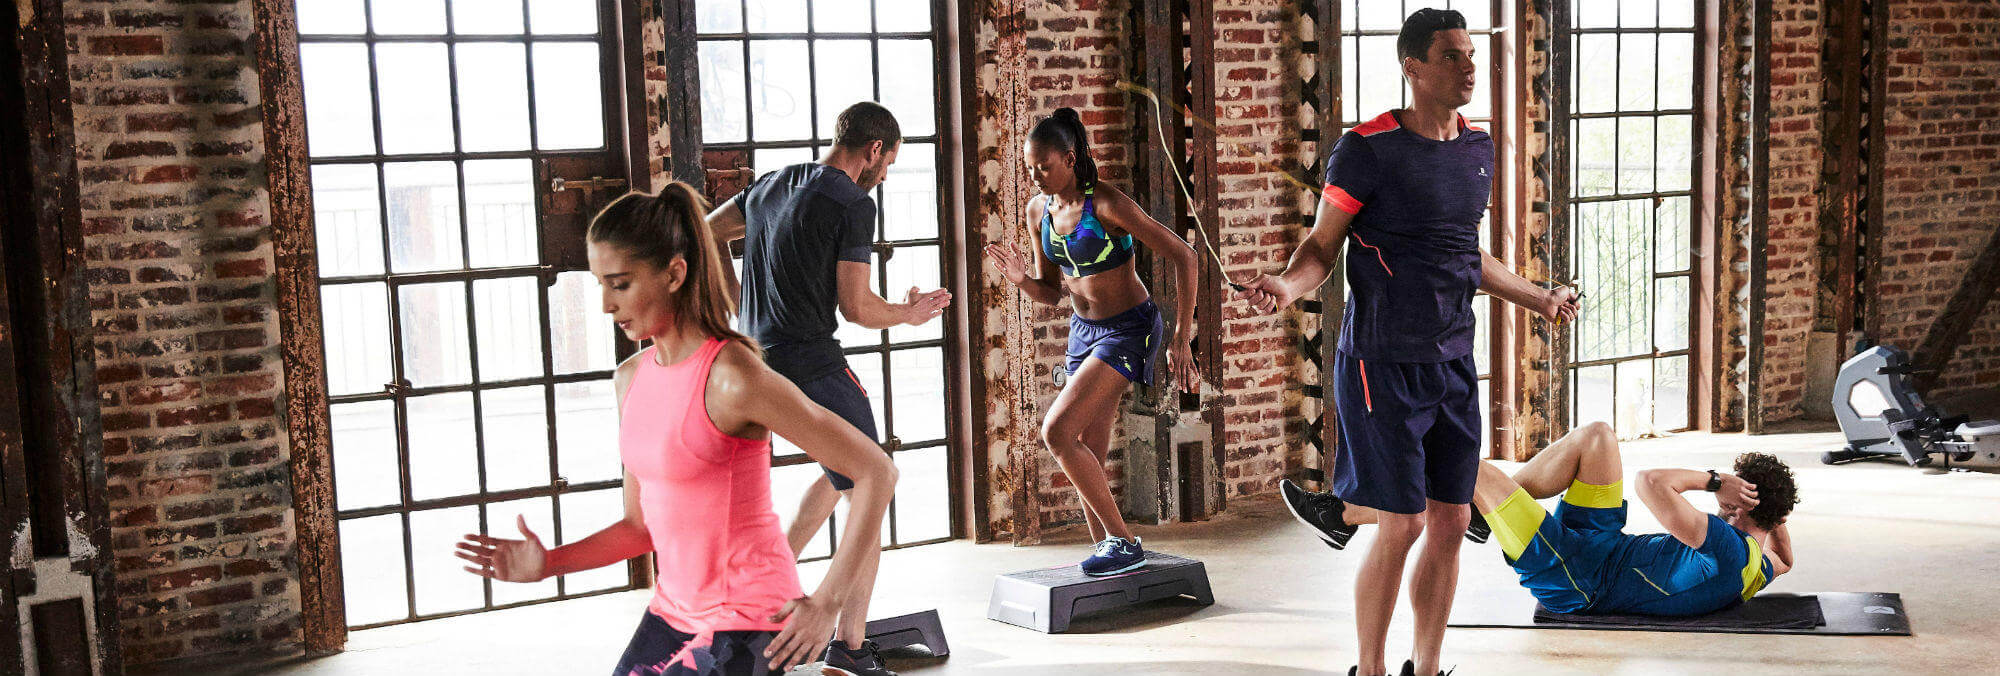 How Long Should a Fitness Session Last to be Effective?